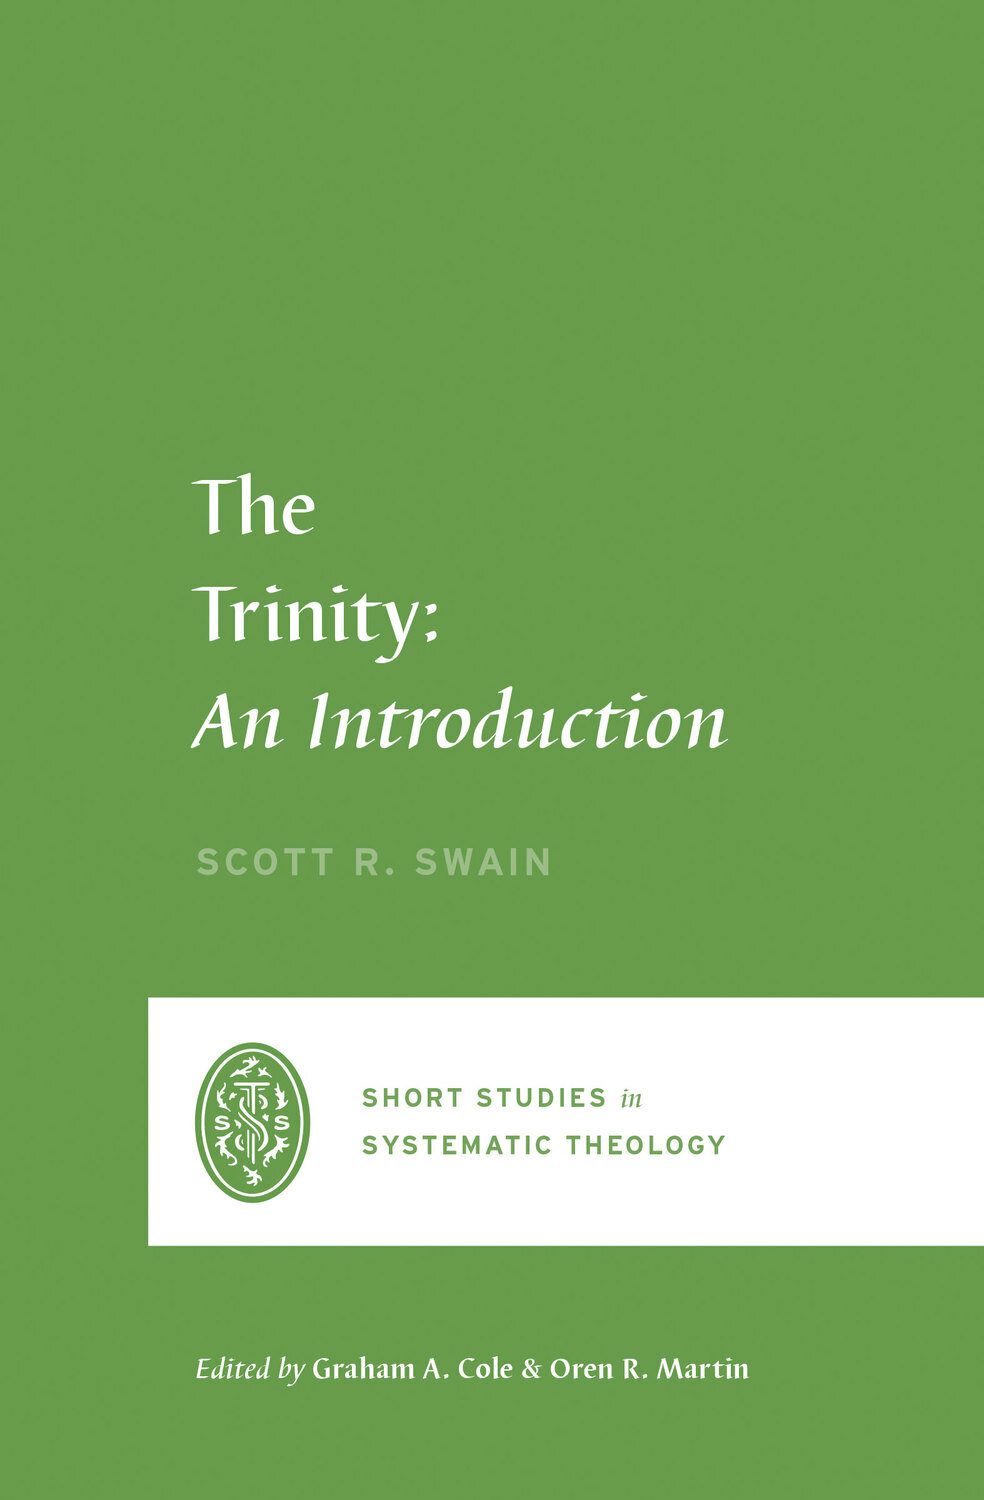 The Trinity: An Introduction (Short Studies in Systematic Theology)